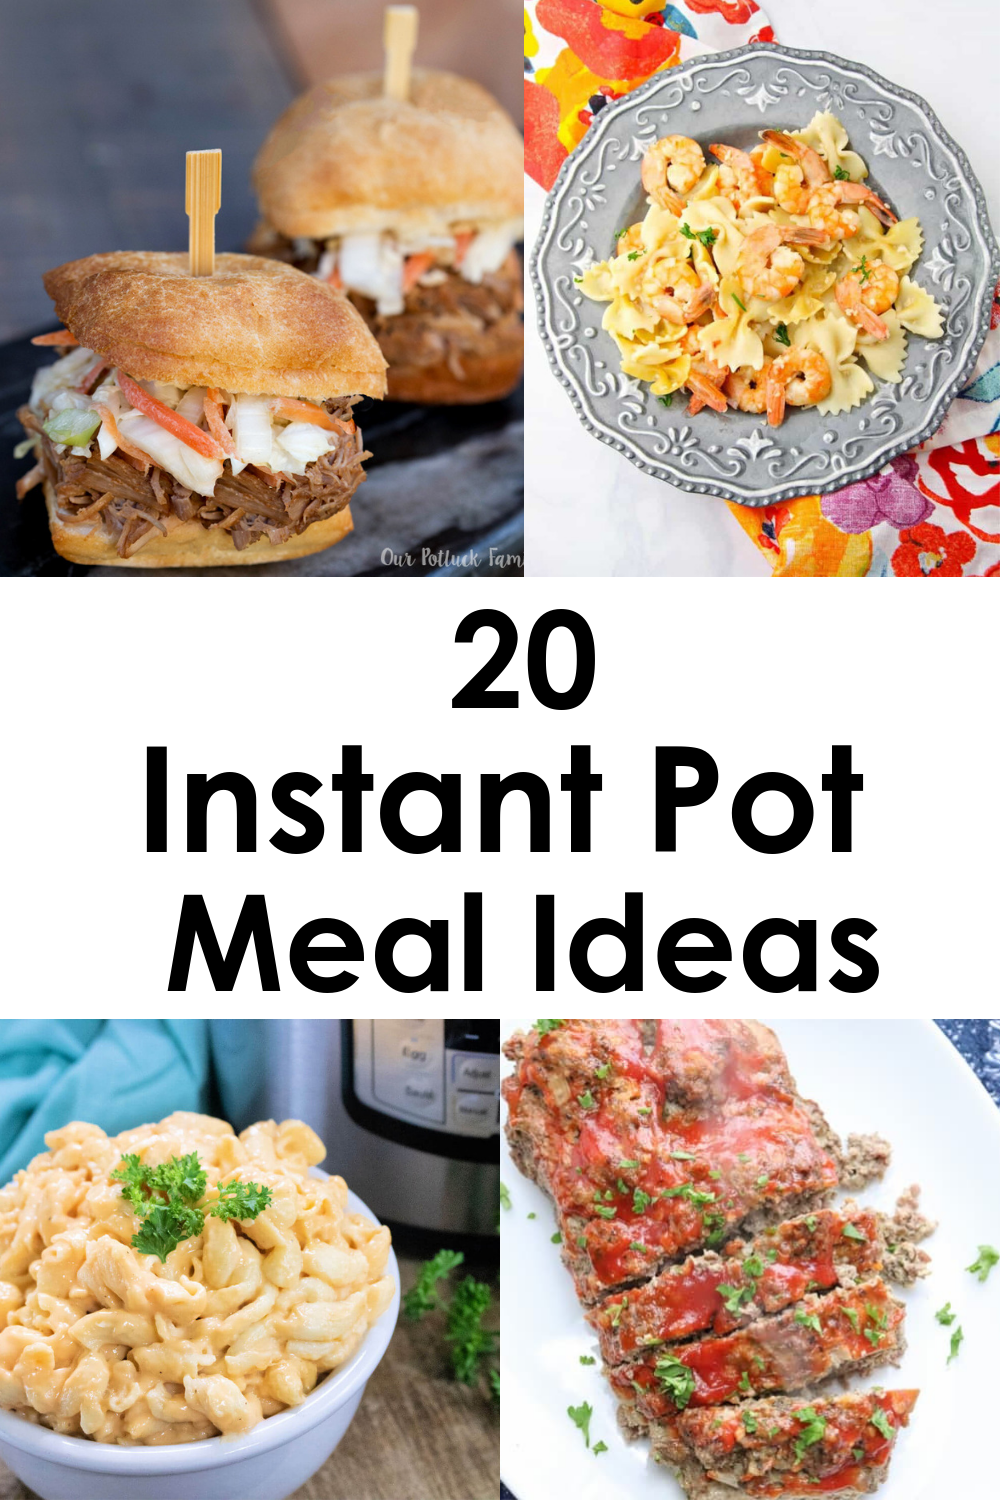 instant pot meals ideas/ Are you looking for Easy and healthy Instapot recipes for beginners, either its fir two or whole family this article has 20 Instapot recipes, from chicken, beef, port, pasta, ribs to low carbs and Vegetarian too? Click the post to see the variety of different types of things to cook on your Instapot today.#InstantPotRecipes#PressureCooker #Dinner#DinnerRecipes #easydinner #instantpot #familydinner #instapot #instantpotchicken #instantpotpasta #lazydinners #dinnerrecipes